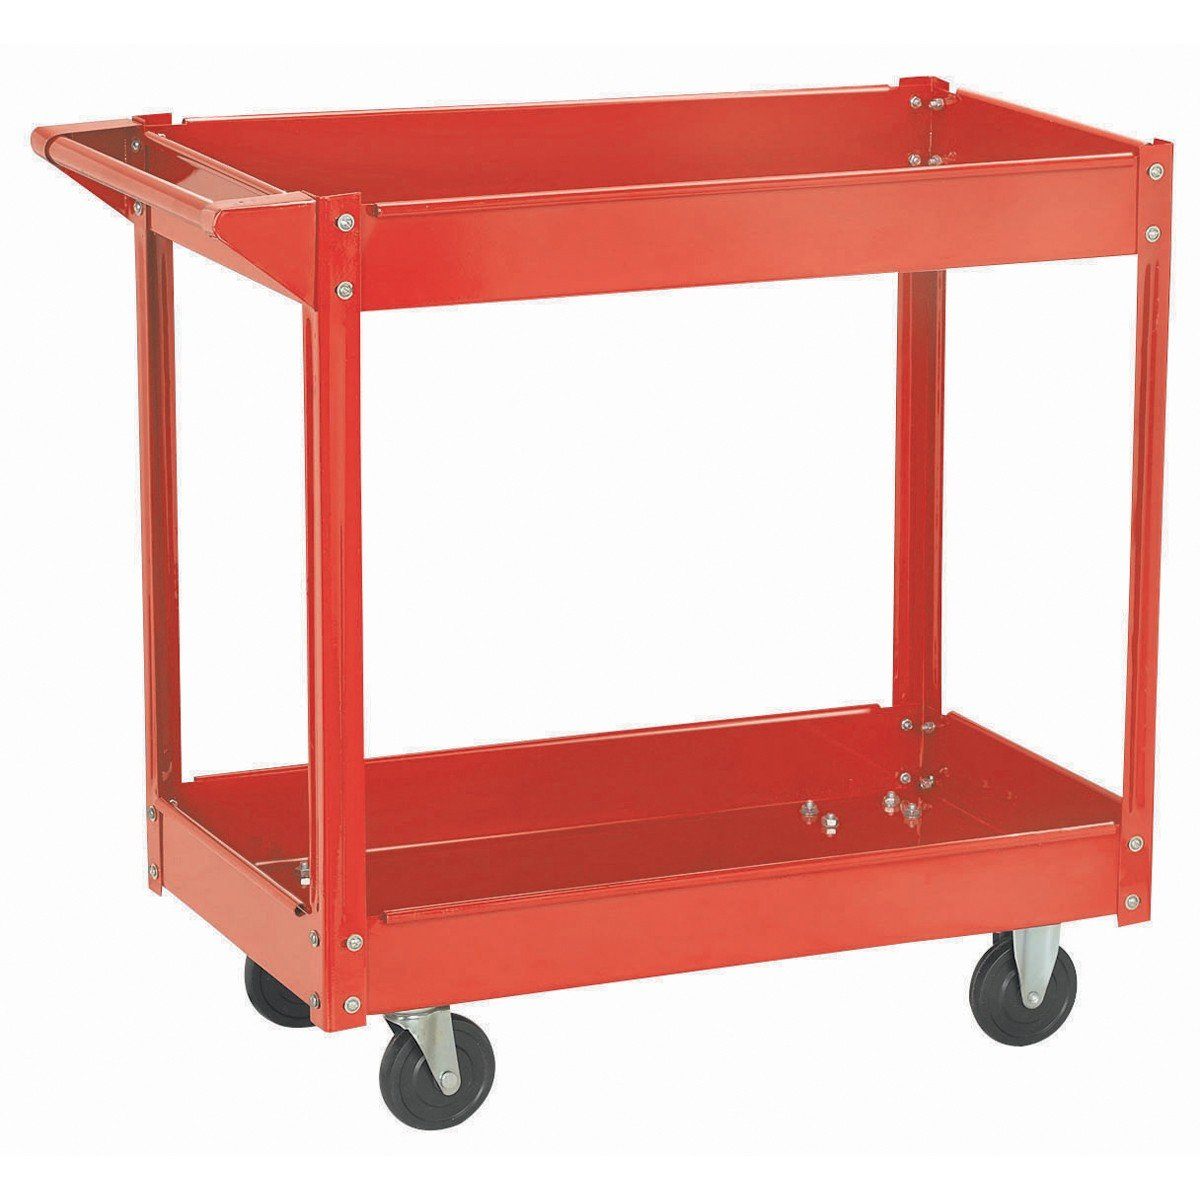 16 In. x 30 In.Two Shelf Steel Service Cart